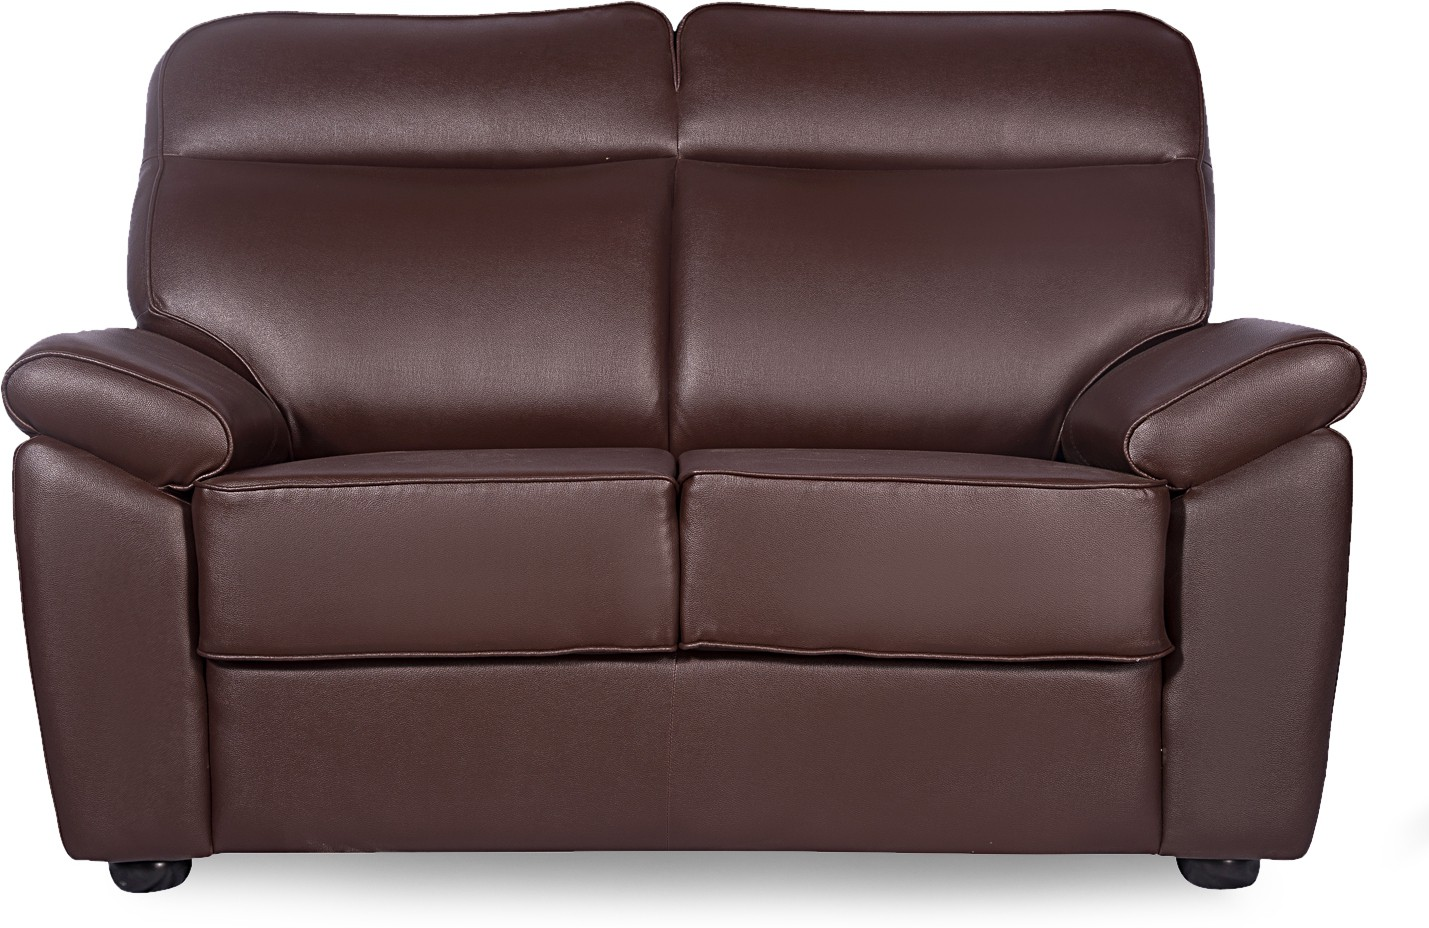 Interio Sofa Modular Godrej Interio Planteous Leatherette 2 Seater Sofa Finish Color